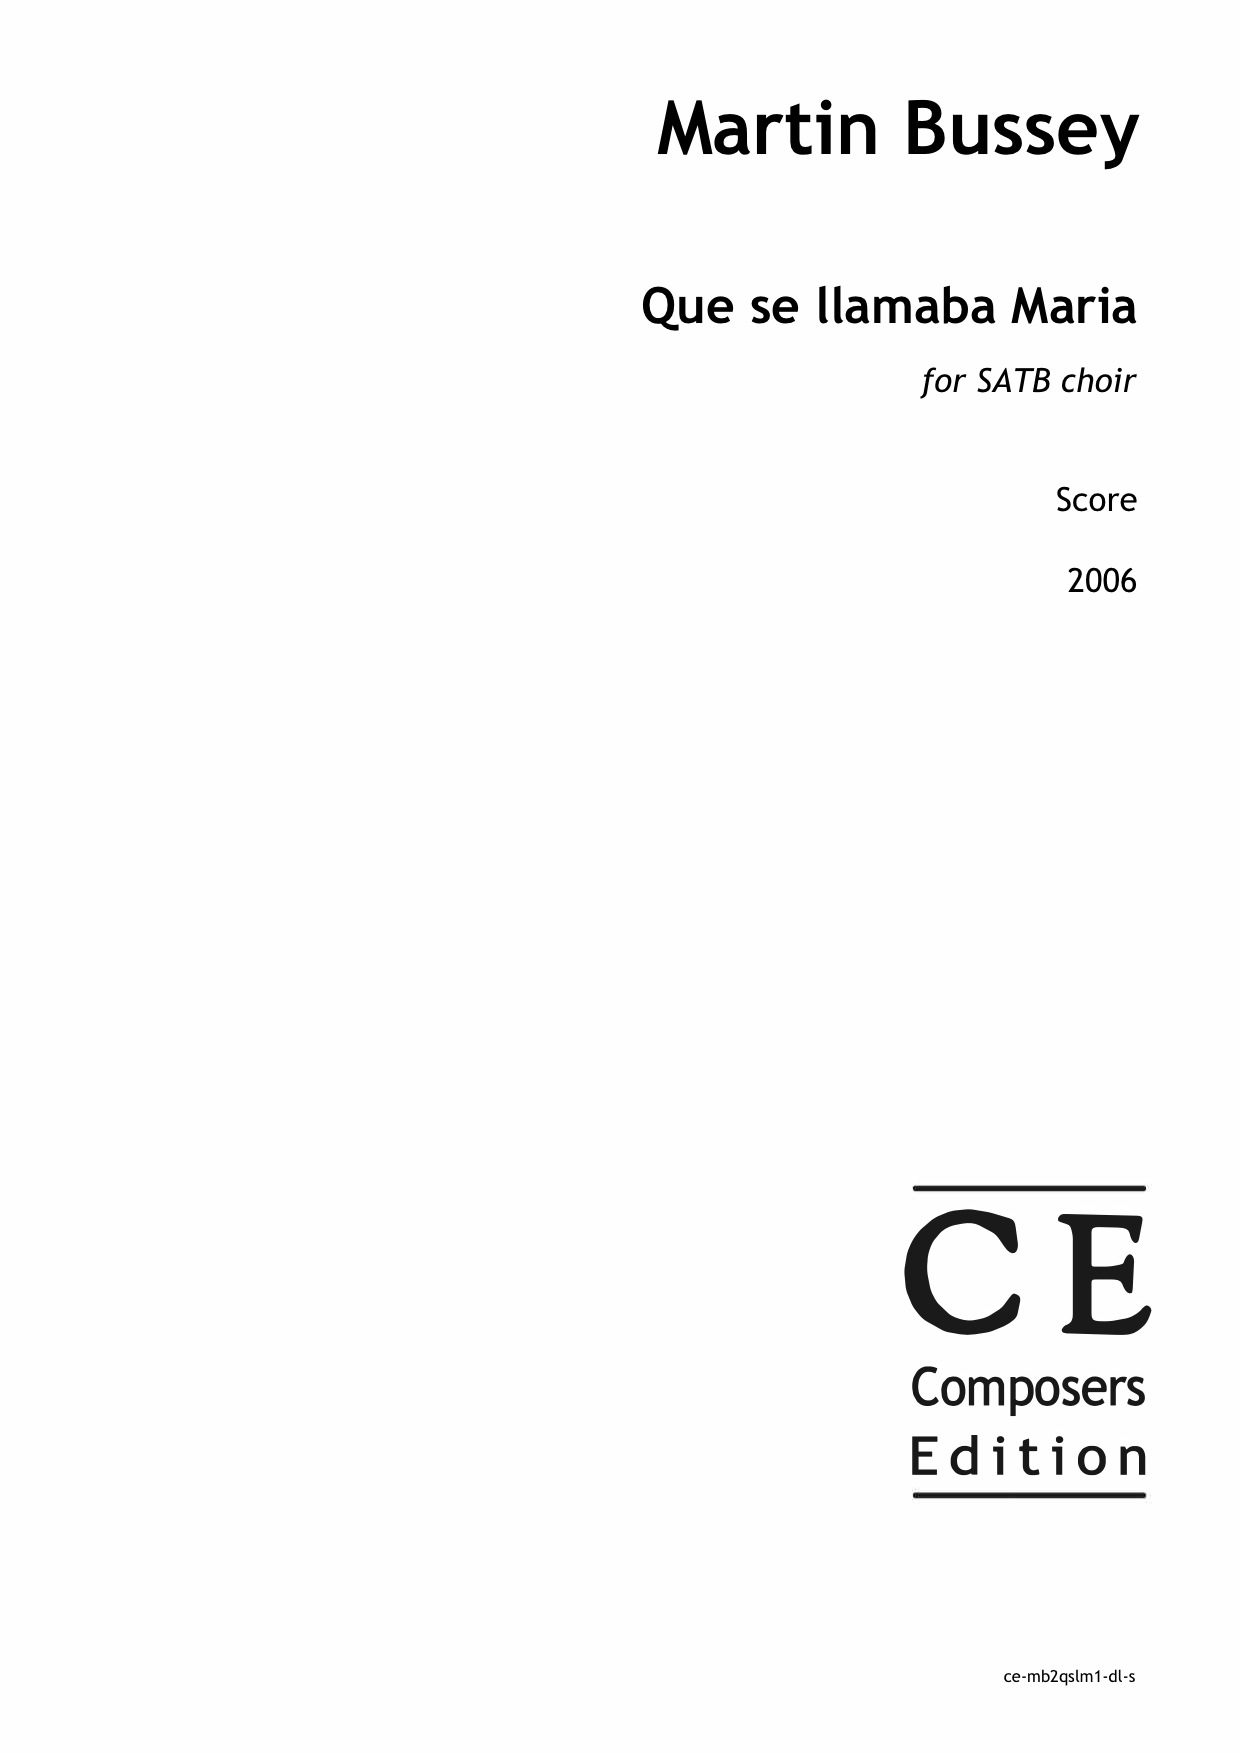 Martin Bussey: Que se llamaba Maria for SATB choir